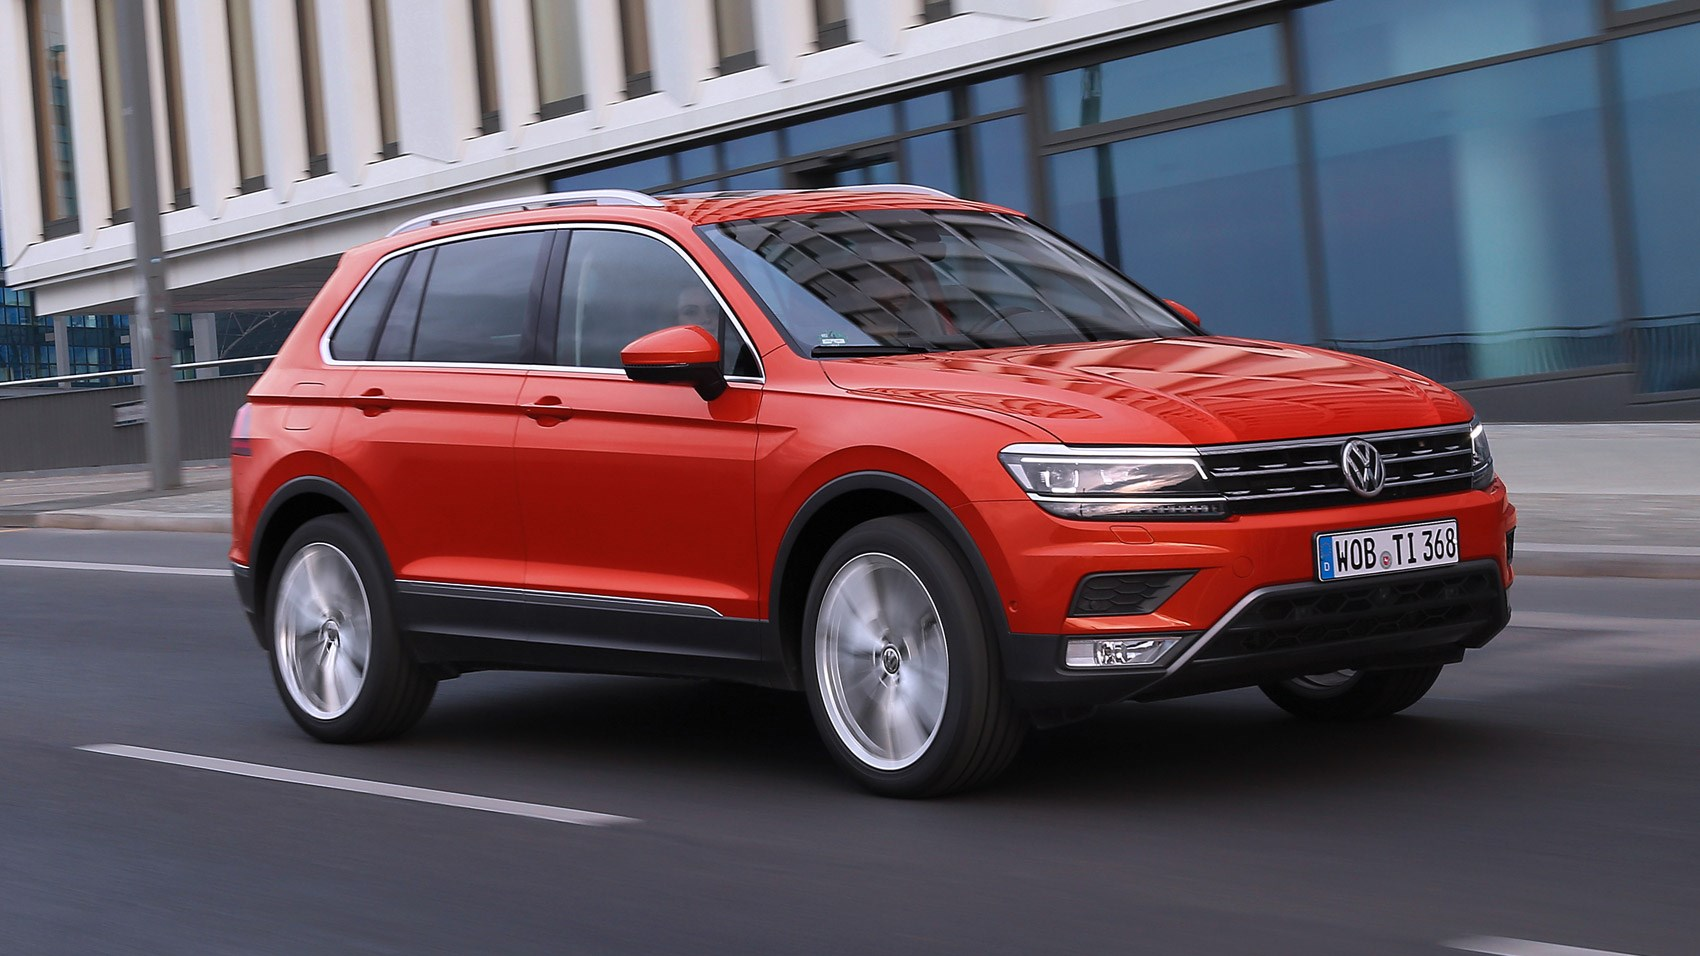 vw tiguan 2 0 tsi 180 outdoor 2016 review by car magazine. Black Bedroom Furniture Sets. Home Design Ideas